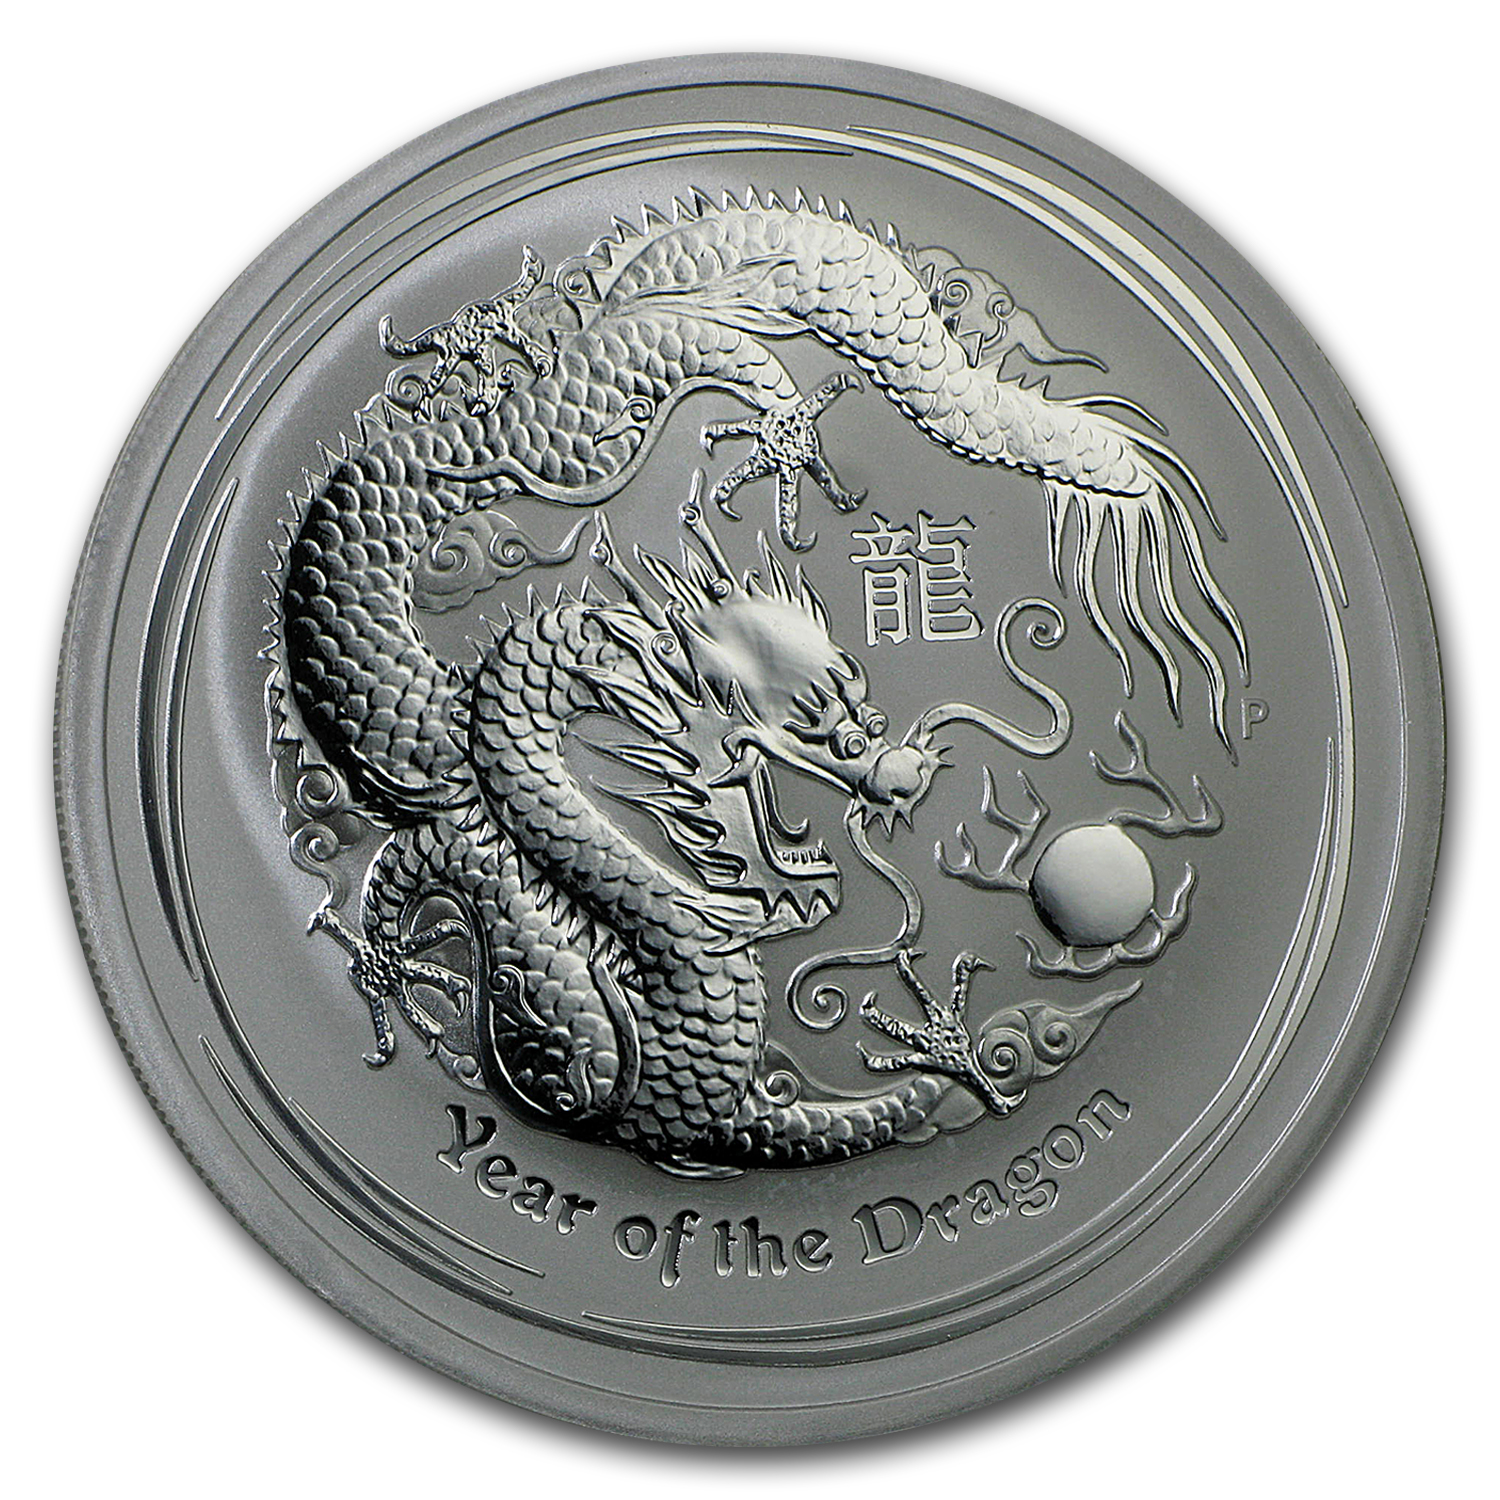 2012 2 oz Silver Lunar Year of the Dragon (Light Abrasions)